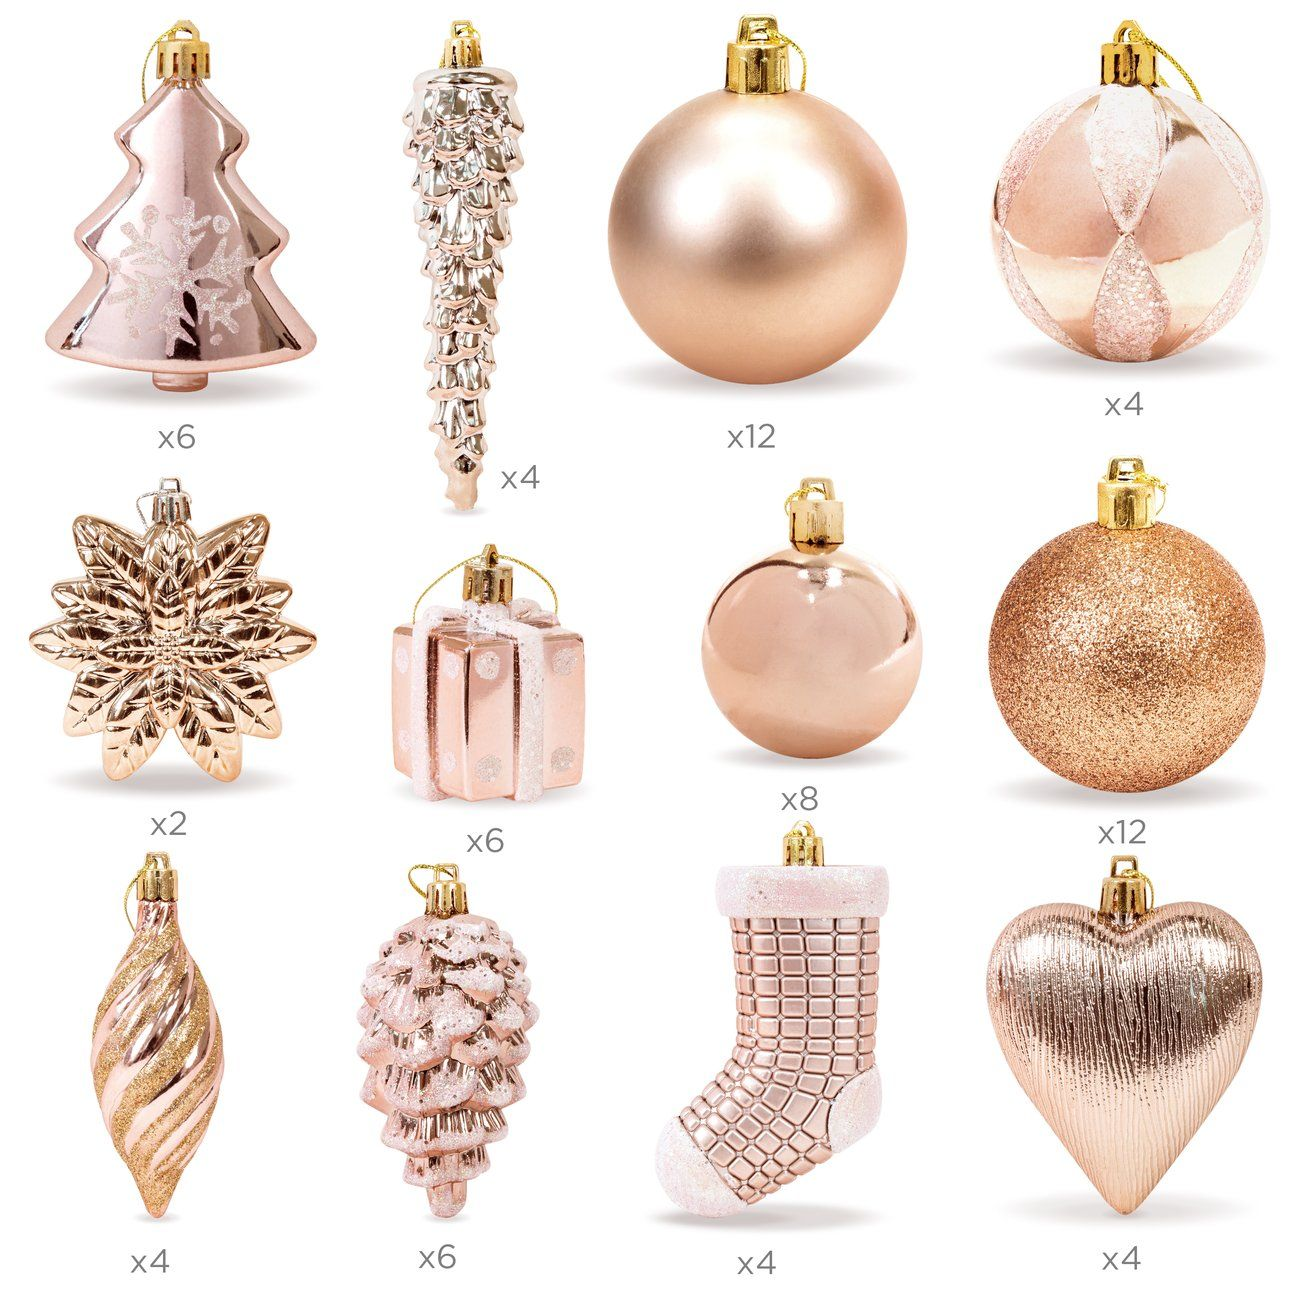 Shatterproof Ornaments These Plastic Ornaments Are Pet And Child Friendly Rose Gold Ornaments Christmas Silver Christmas Decorations Gold Christmas Ornaments